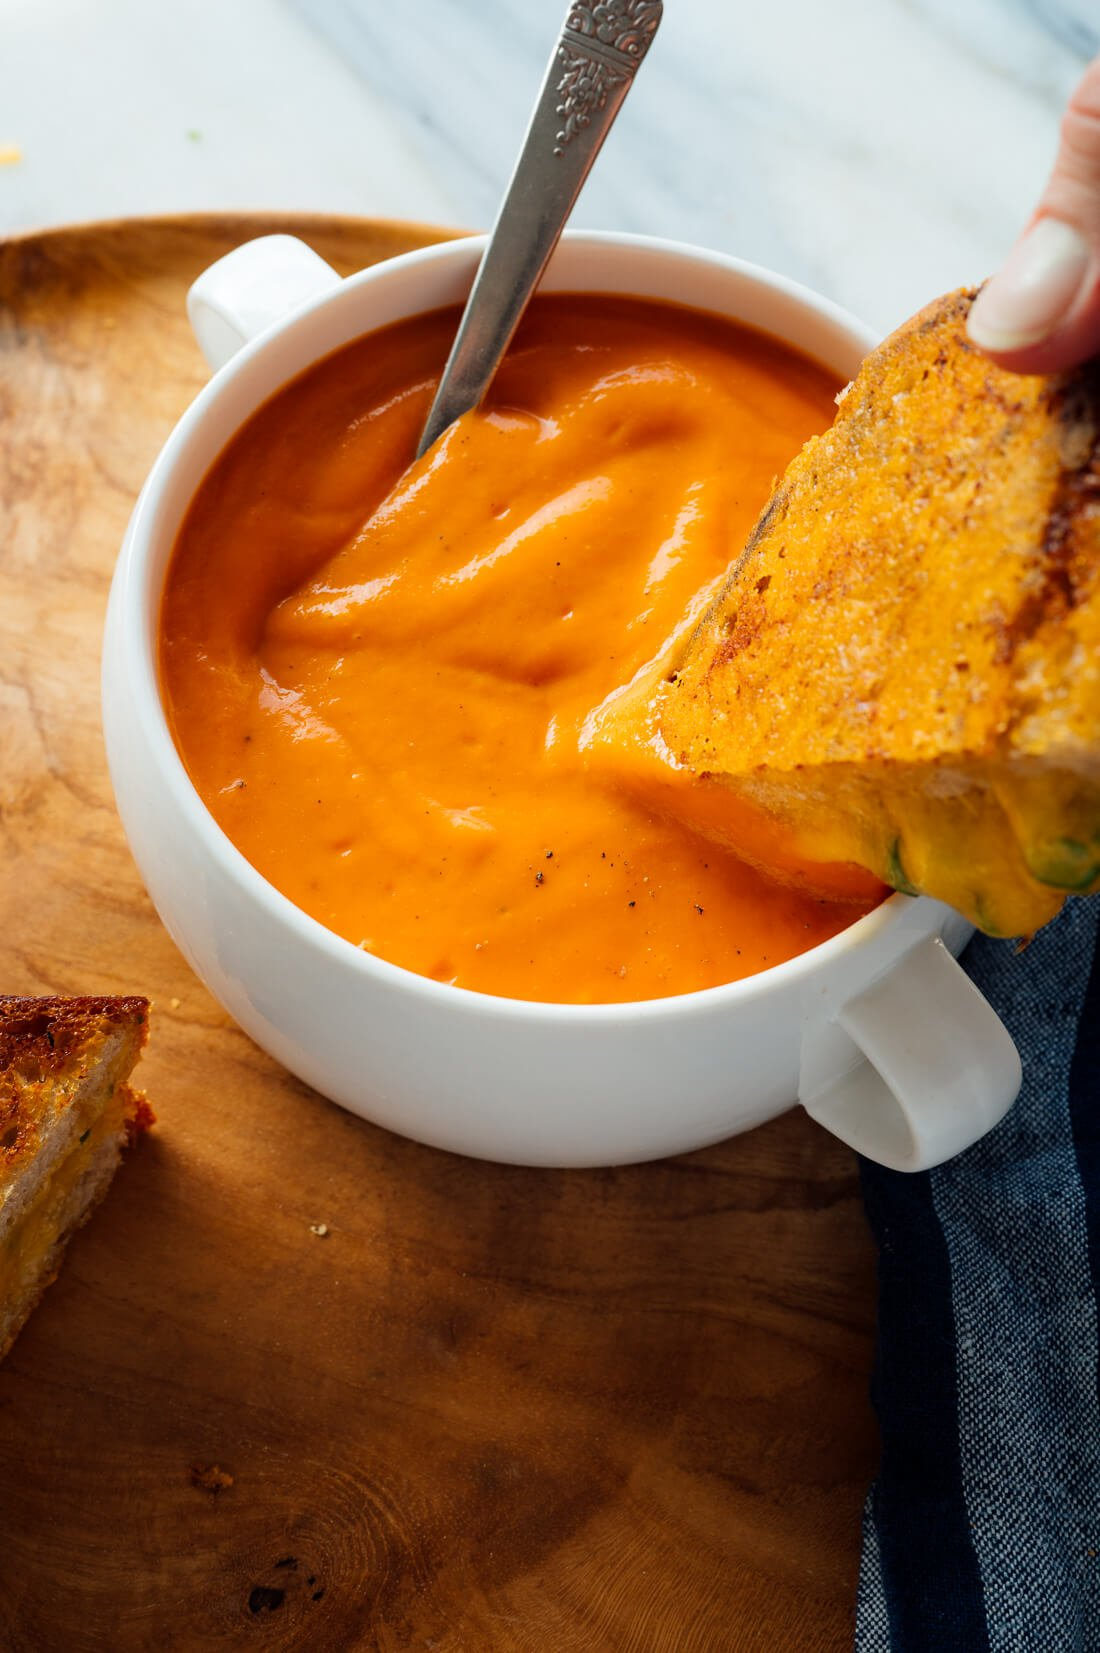 grilled cheese dipping into tomato soup